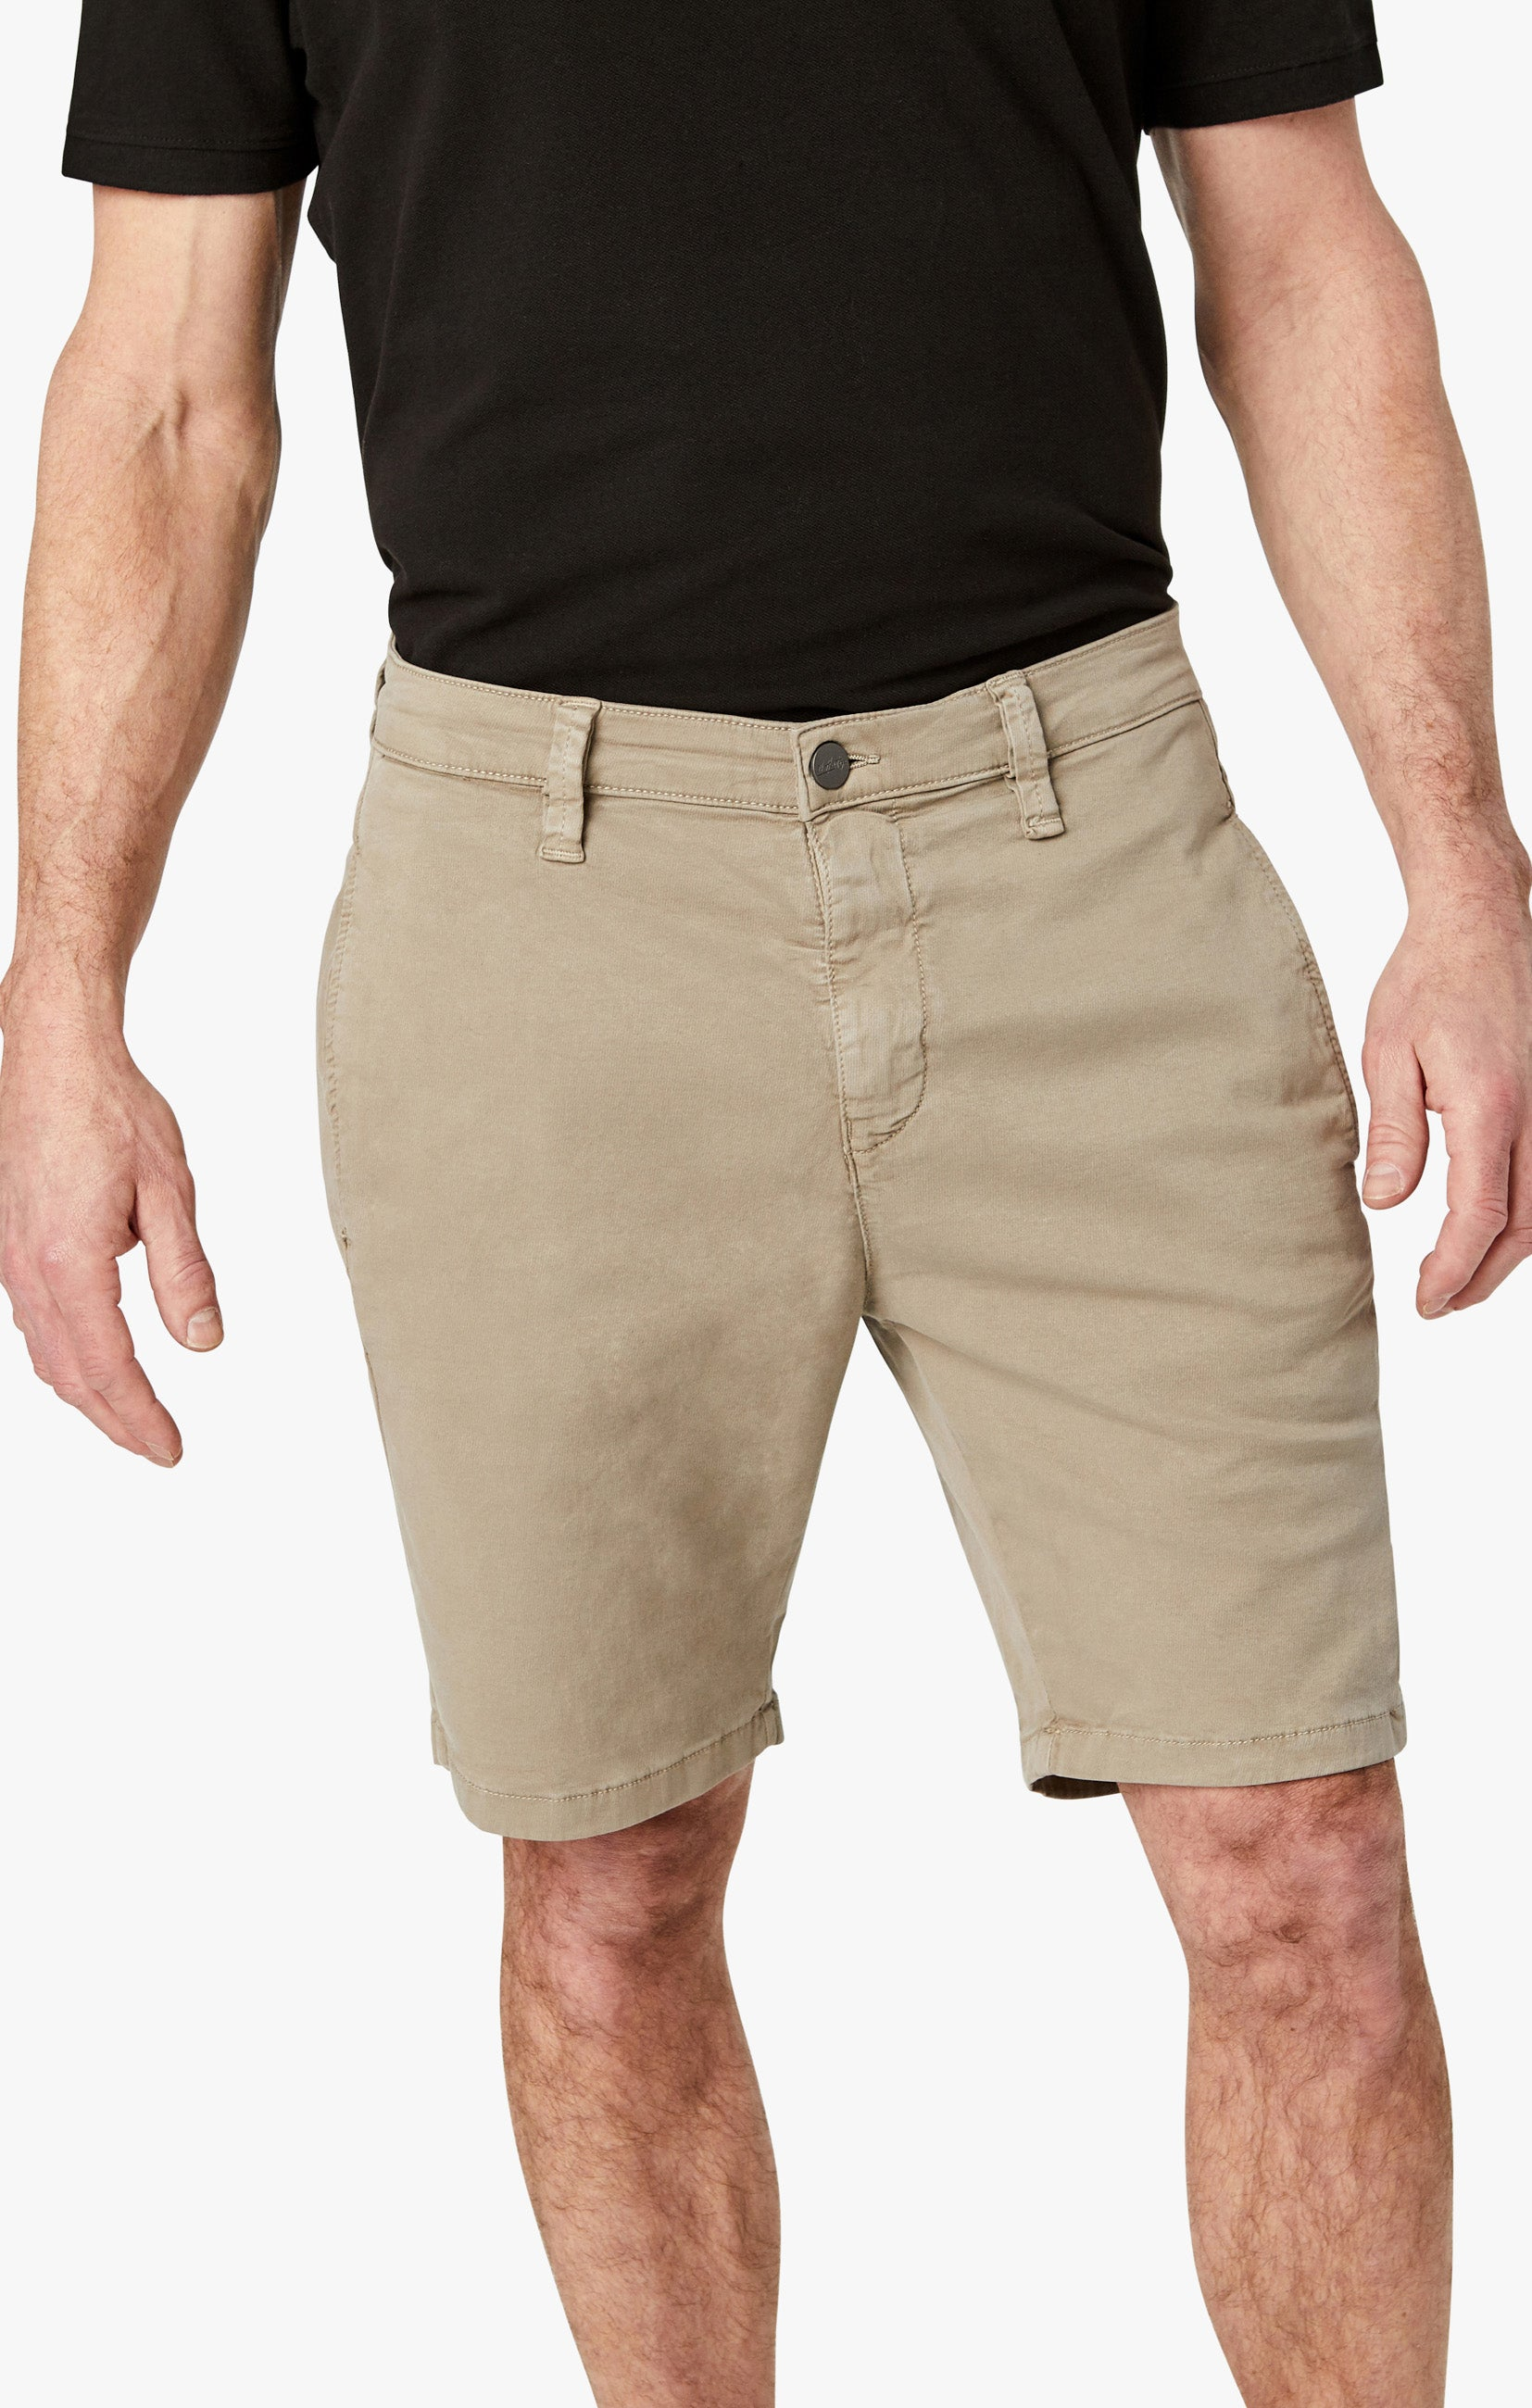 Nevada Shorts In Mushroom Soft Touch Image 8